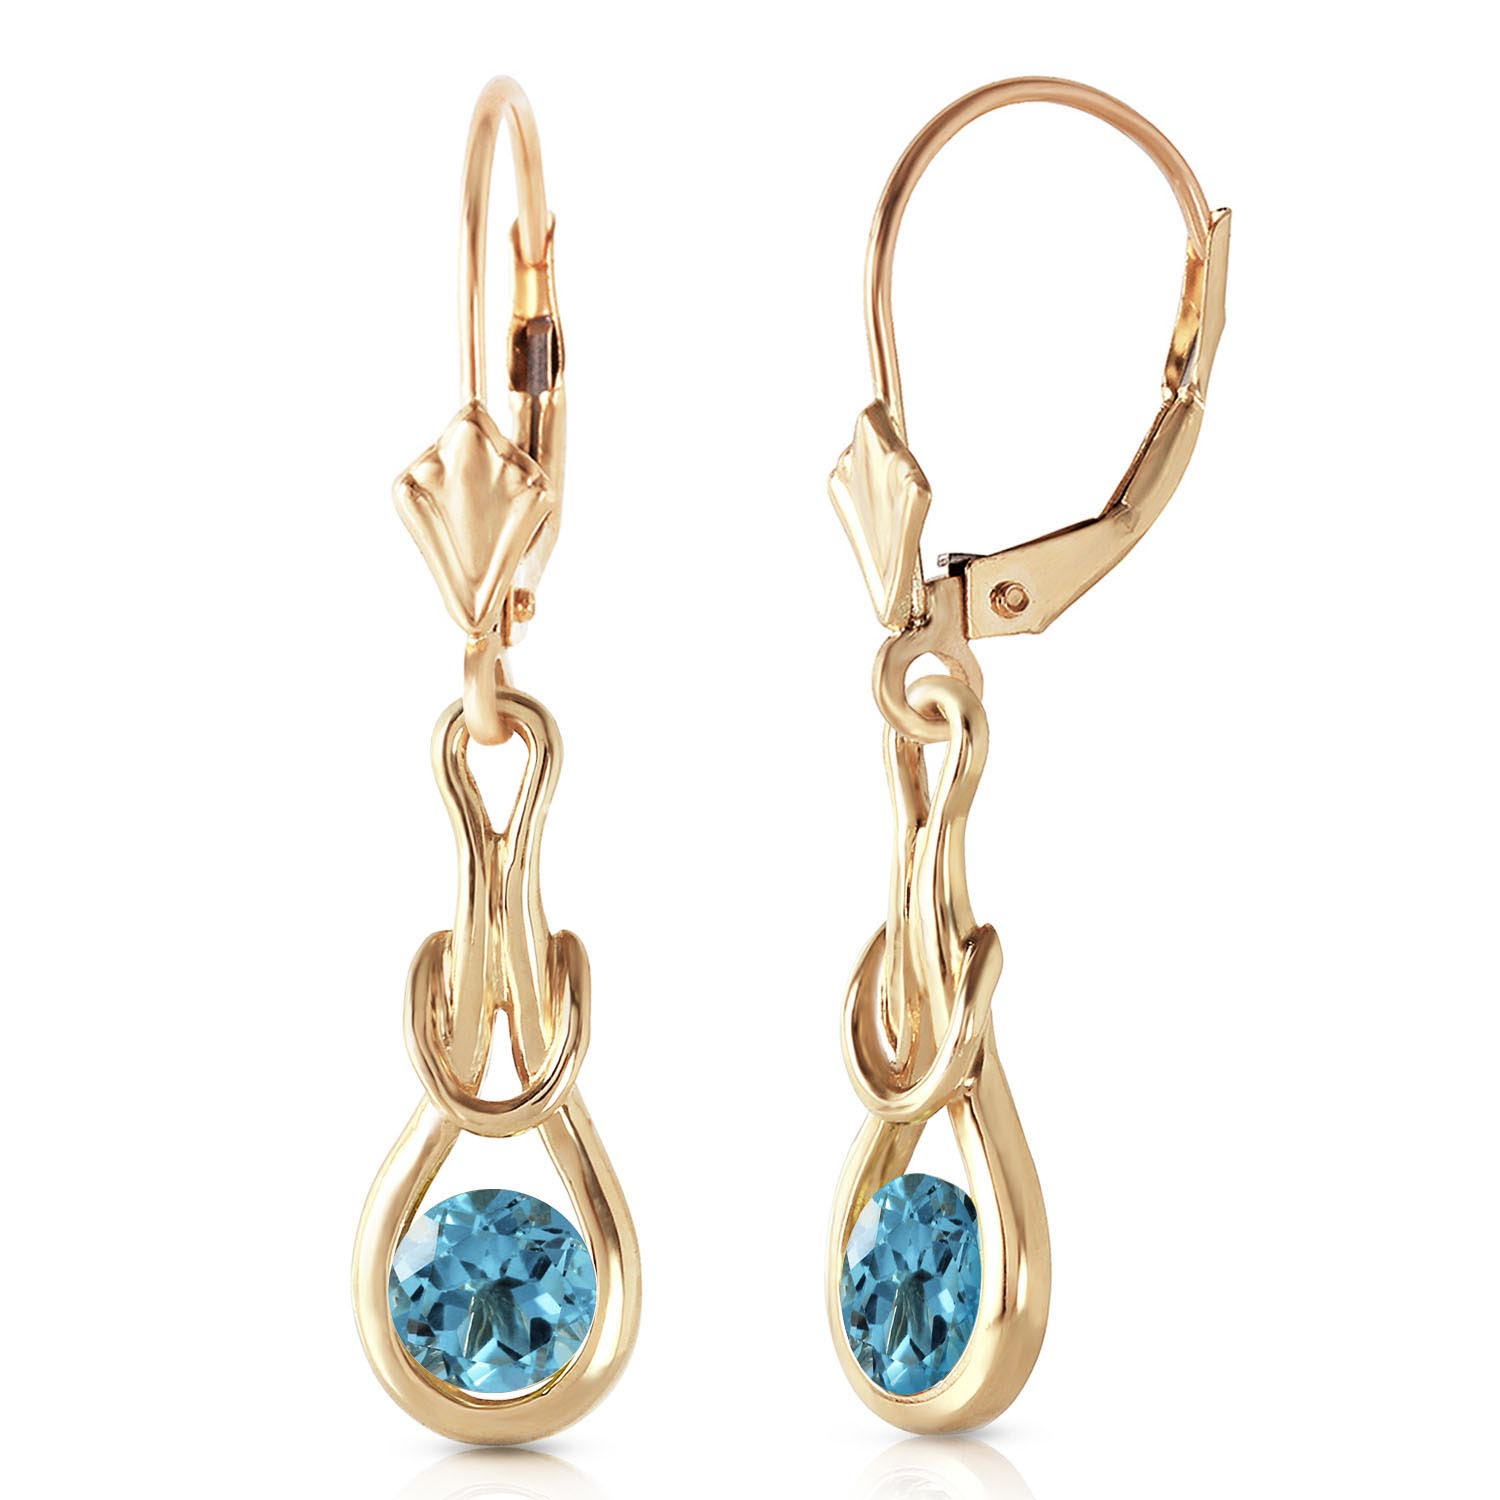 Blue Topaz San Francisco Drop Earrings 1.3ctw in 9ct Gold